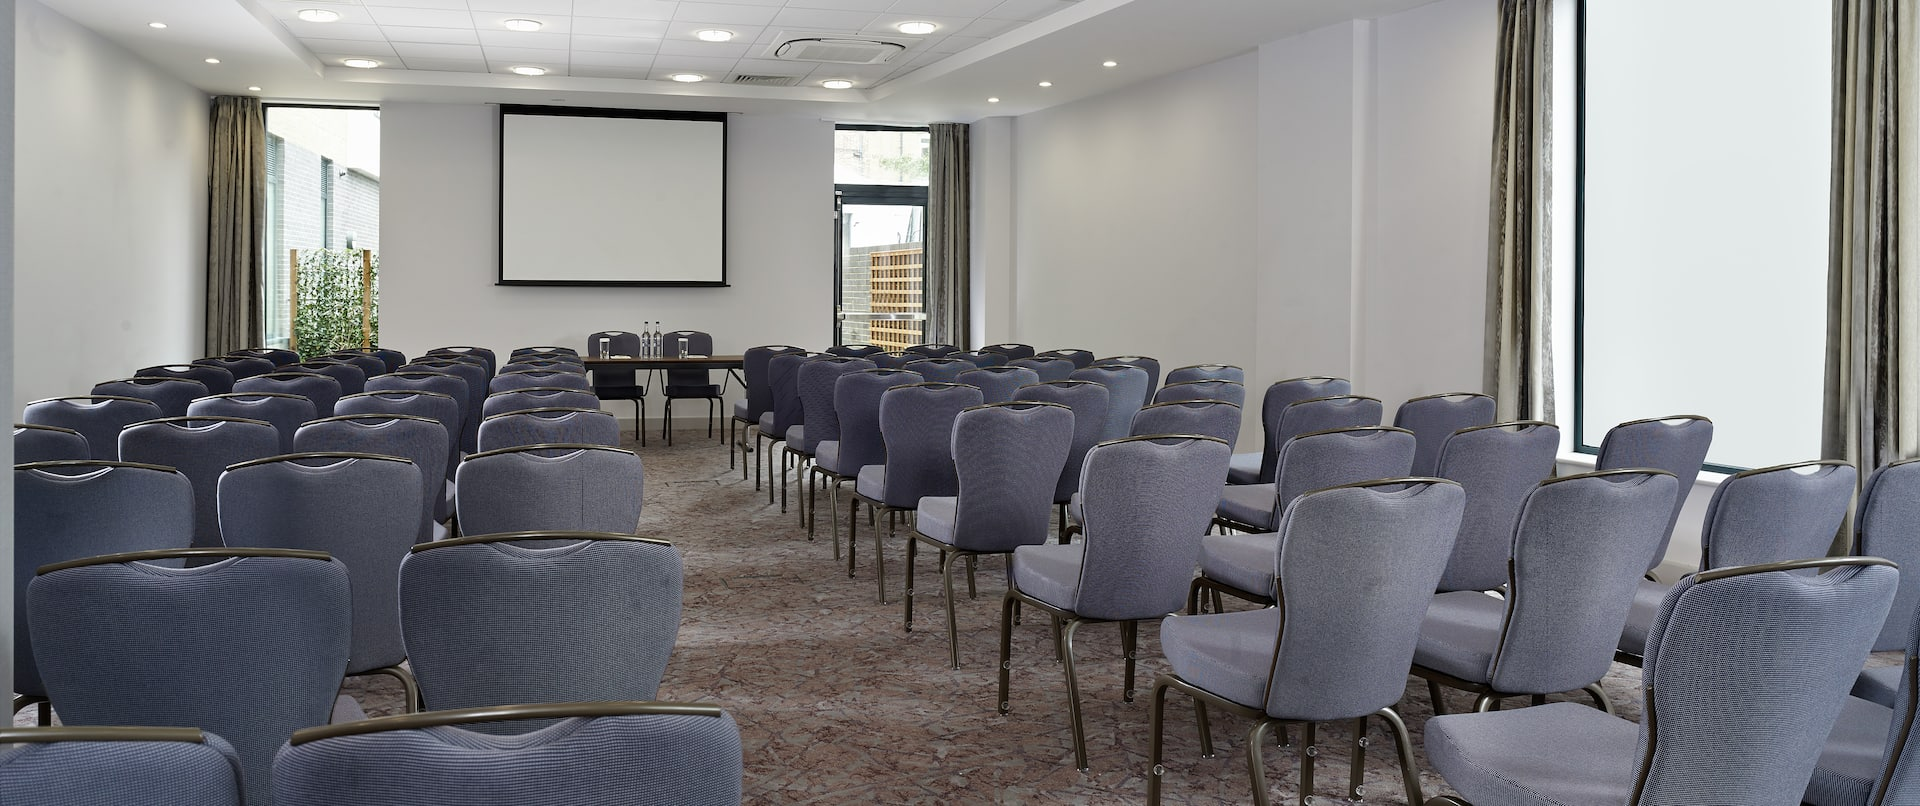 Meeting Room Theater with Screen